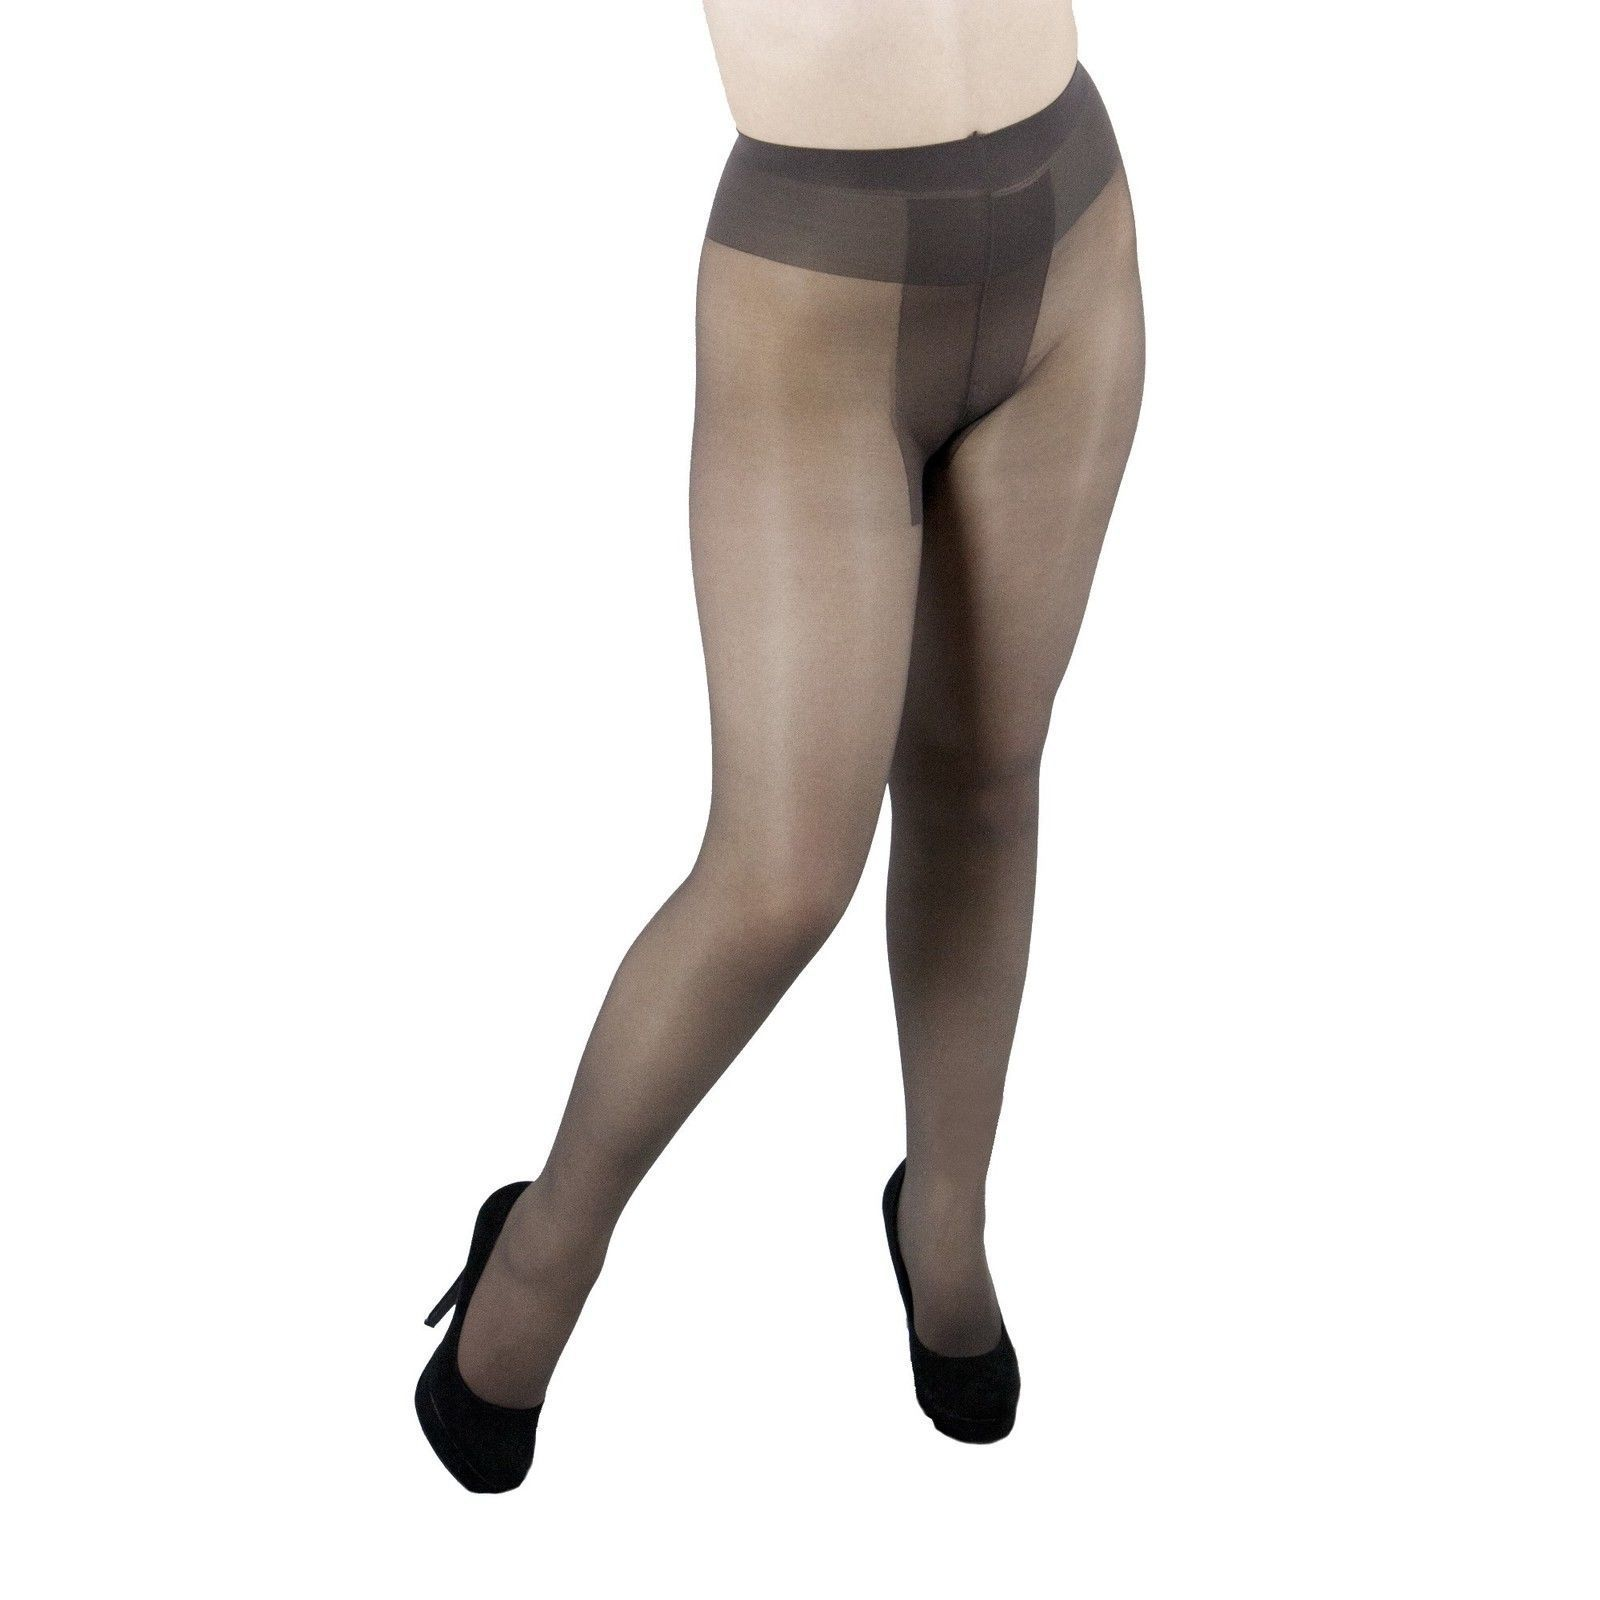 80b1b9b377a Leggs Sheer Energy Sheer To Waist Pantyhose - Medium Support Leg Shiny  Glossy